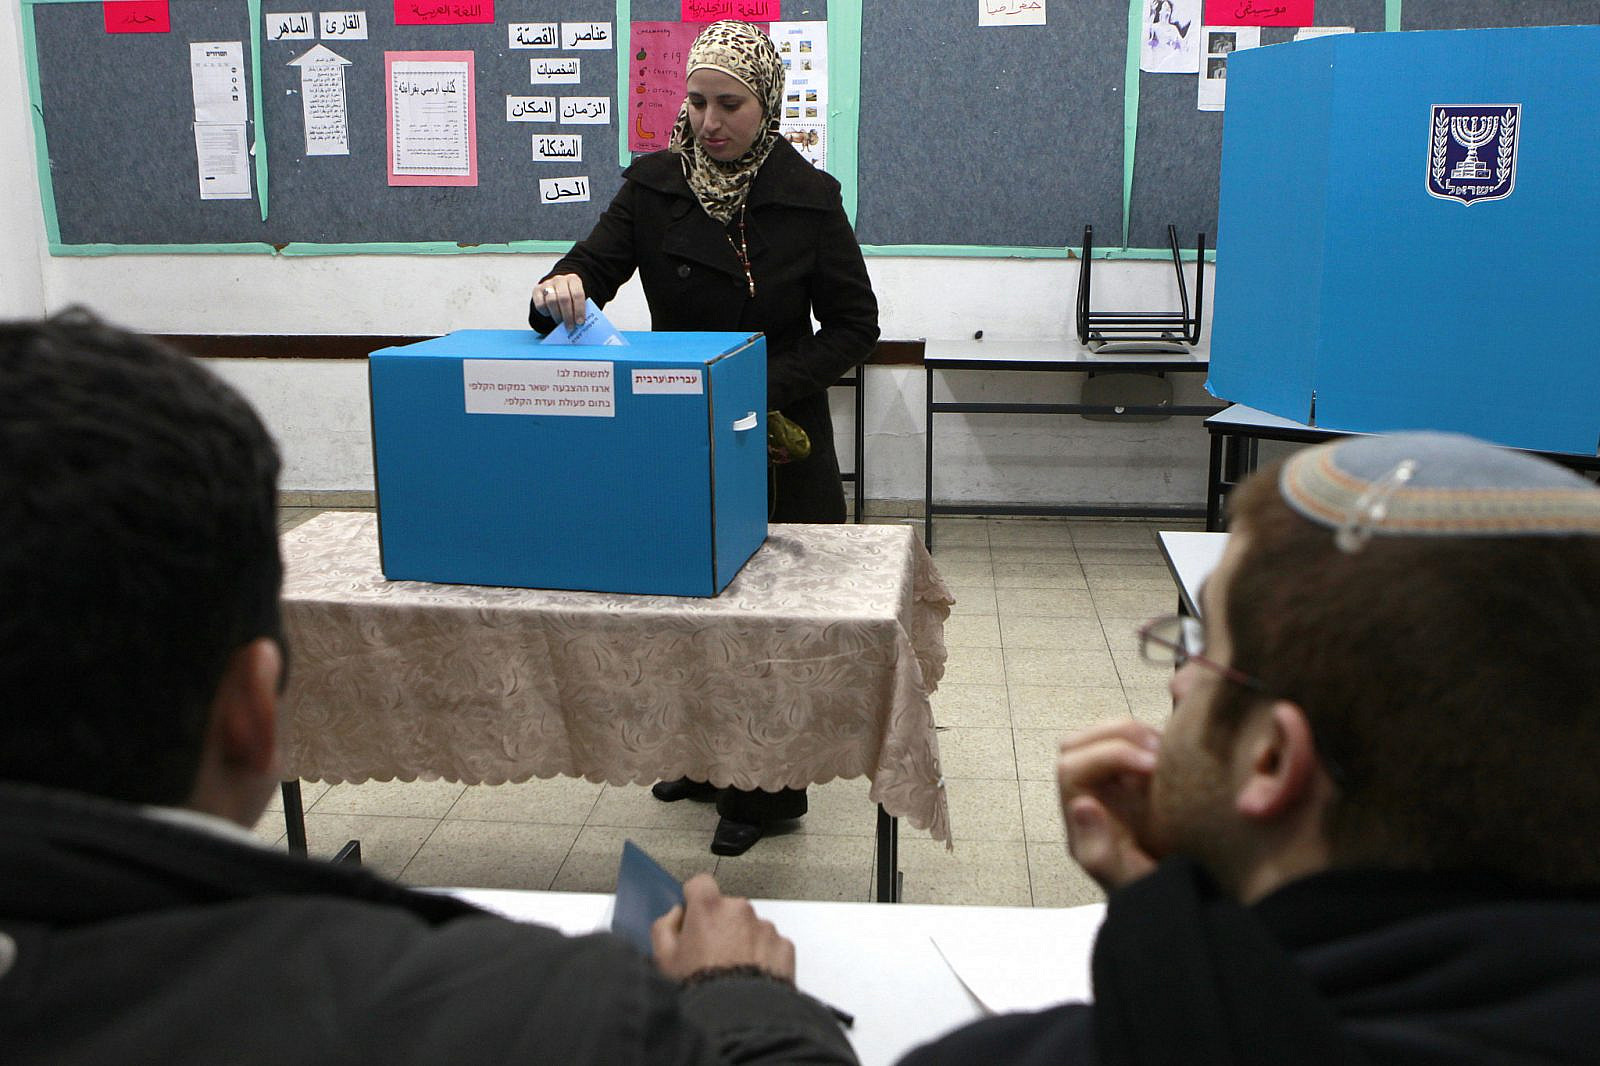 An Arab woman casts her vote at a polling station in the Arab village of Abu Gosh west of Jerusalem, February 10, 2009. (Nati Shohat/Flash90)